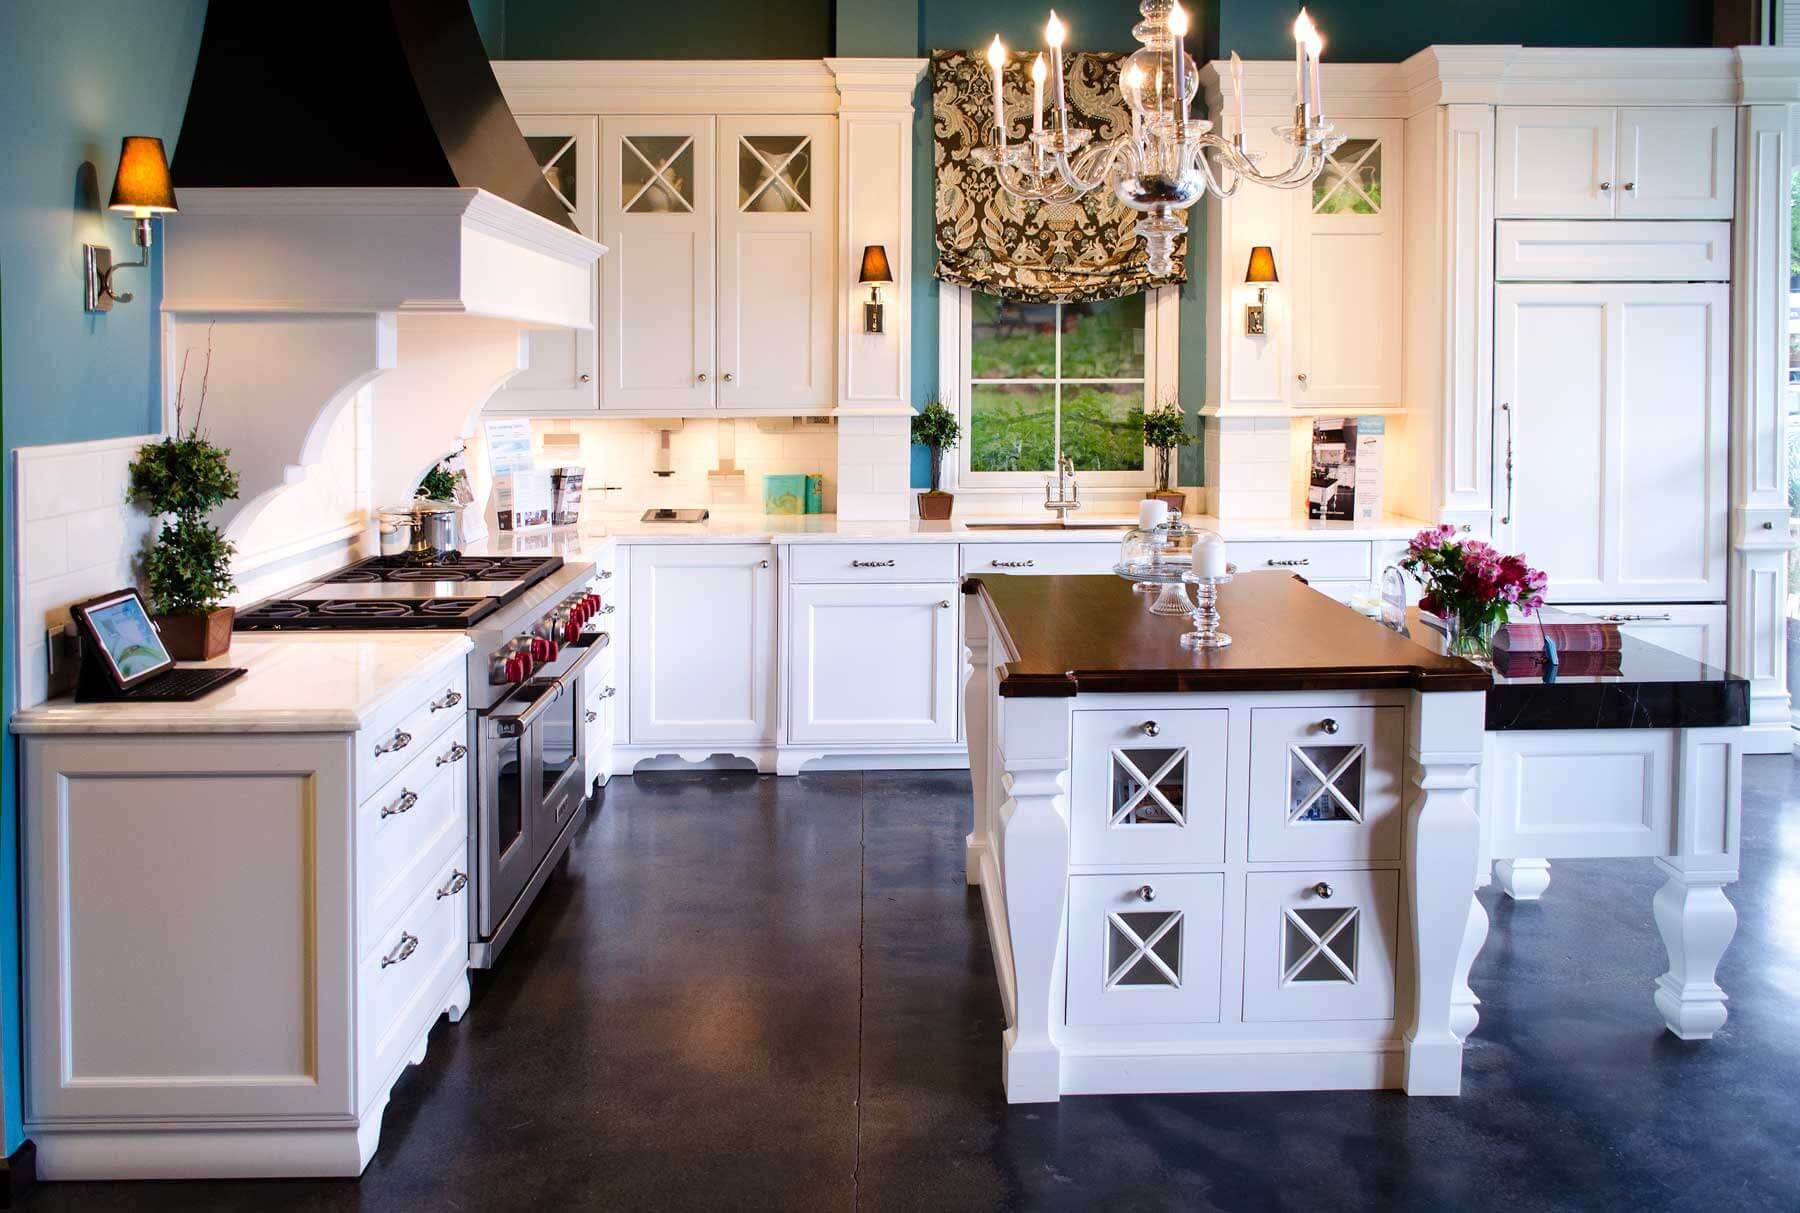 Kitchen Showroom Display Design Ideas